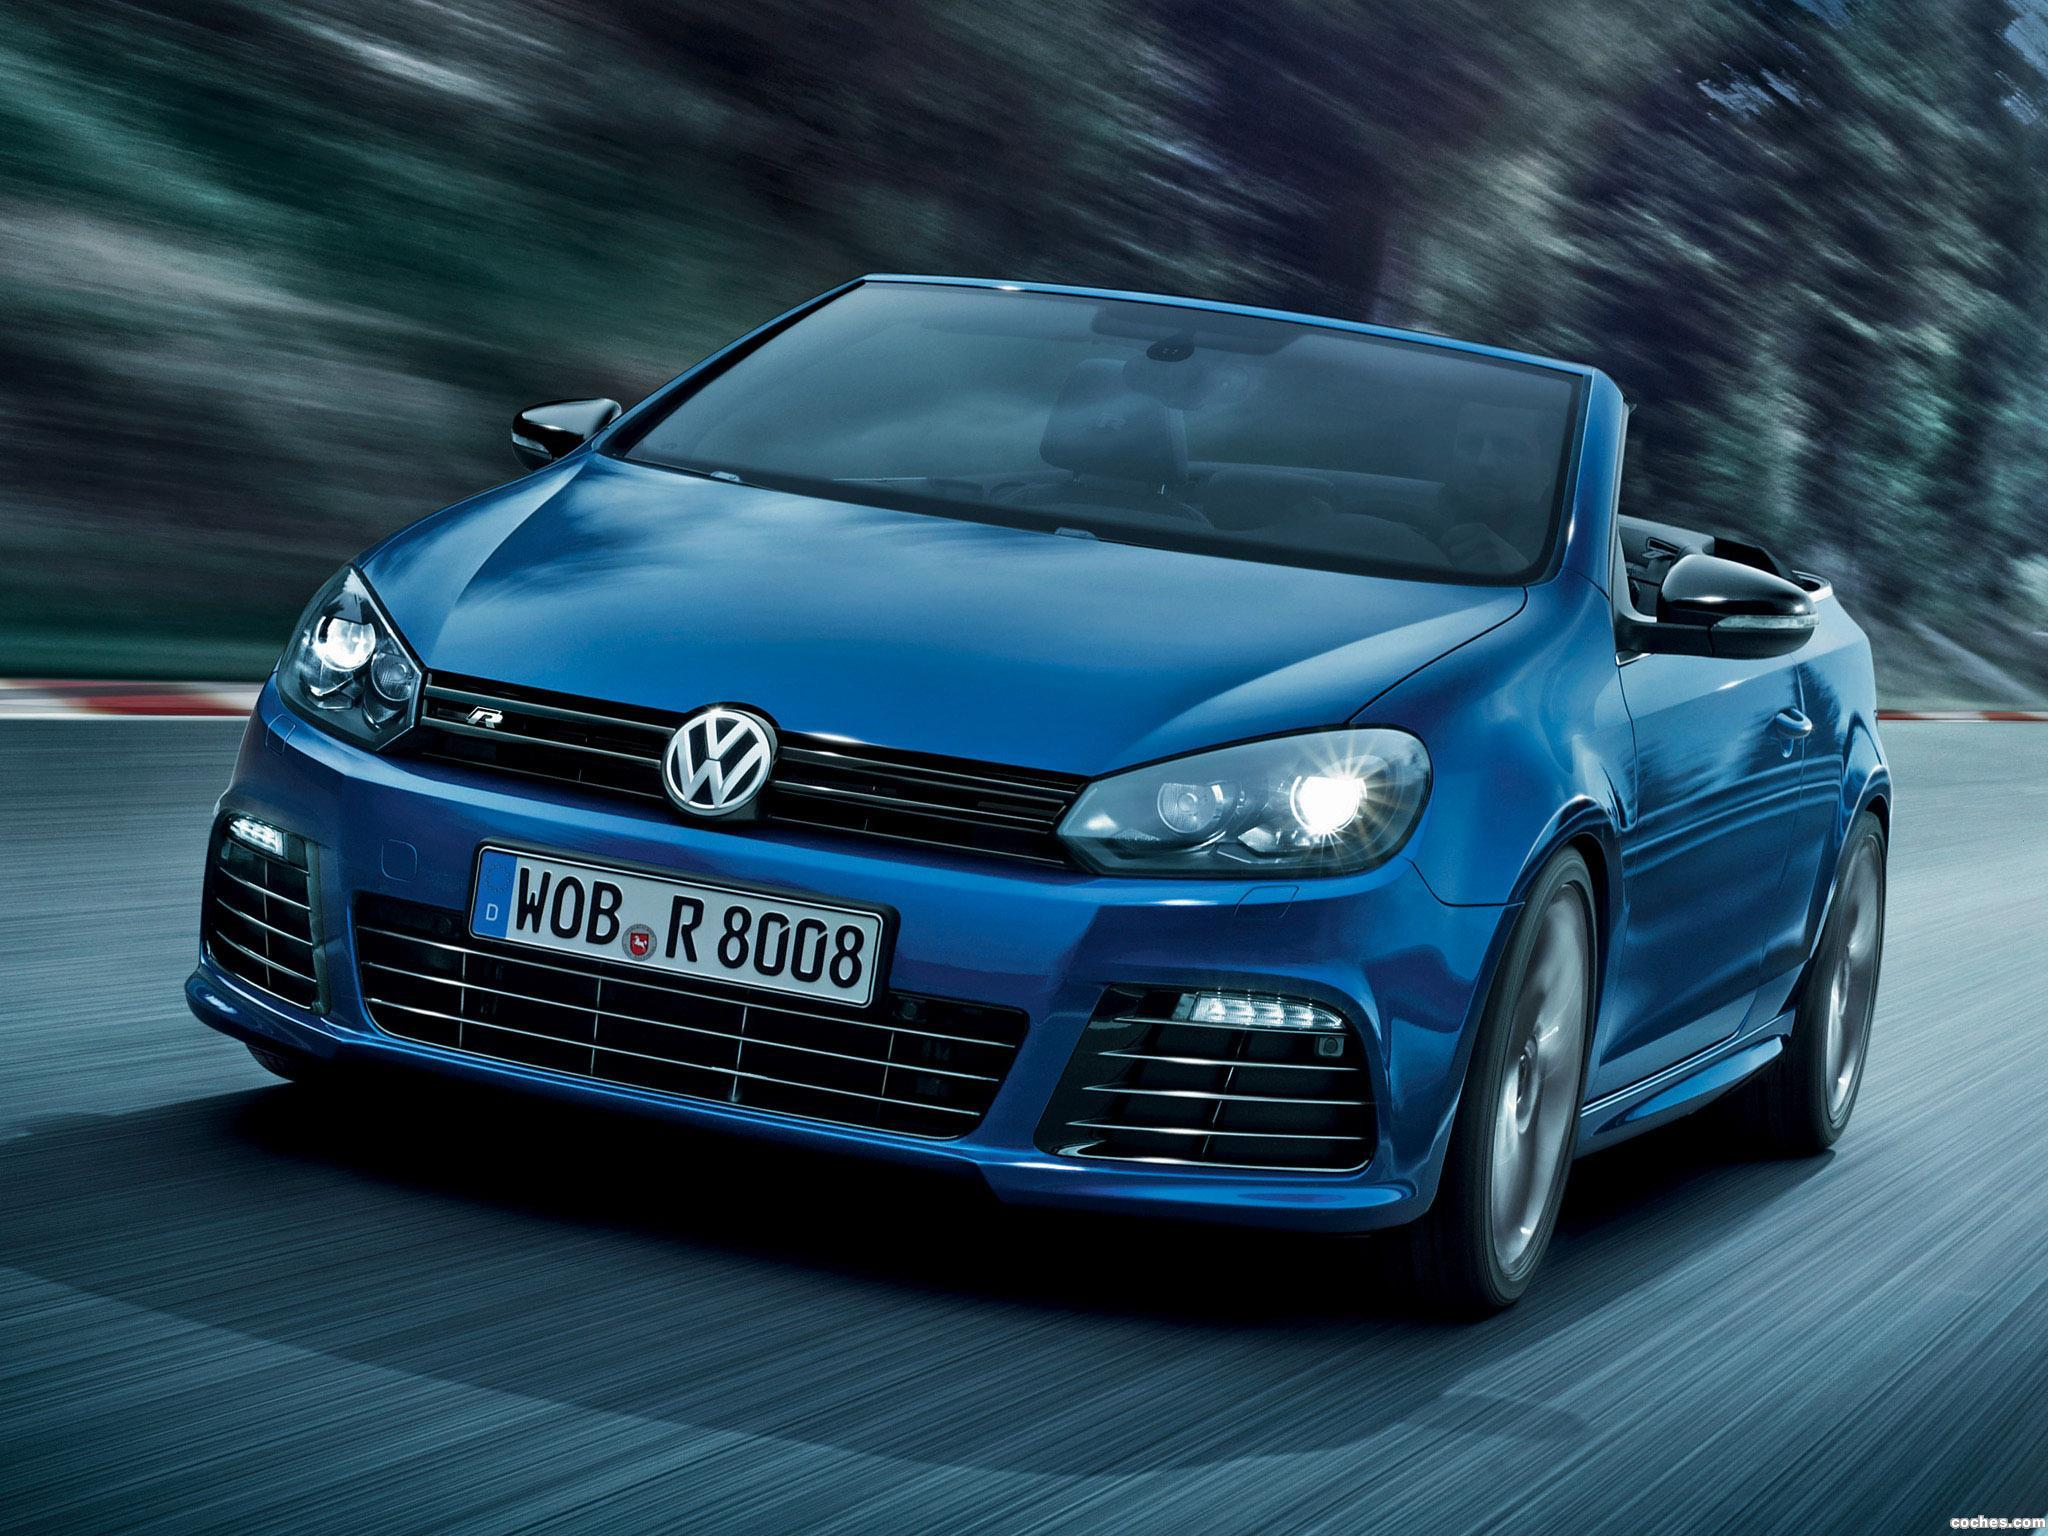 fotos de volkswagen golf vi r cabrio 2013 foto 20. Black Bedroom Furniture Sets. Home Design Ideas